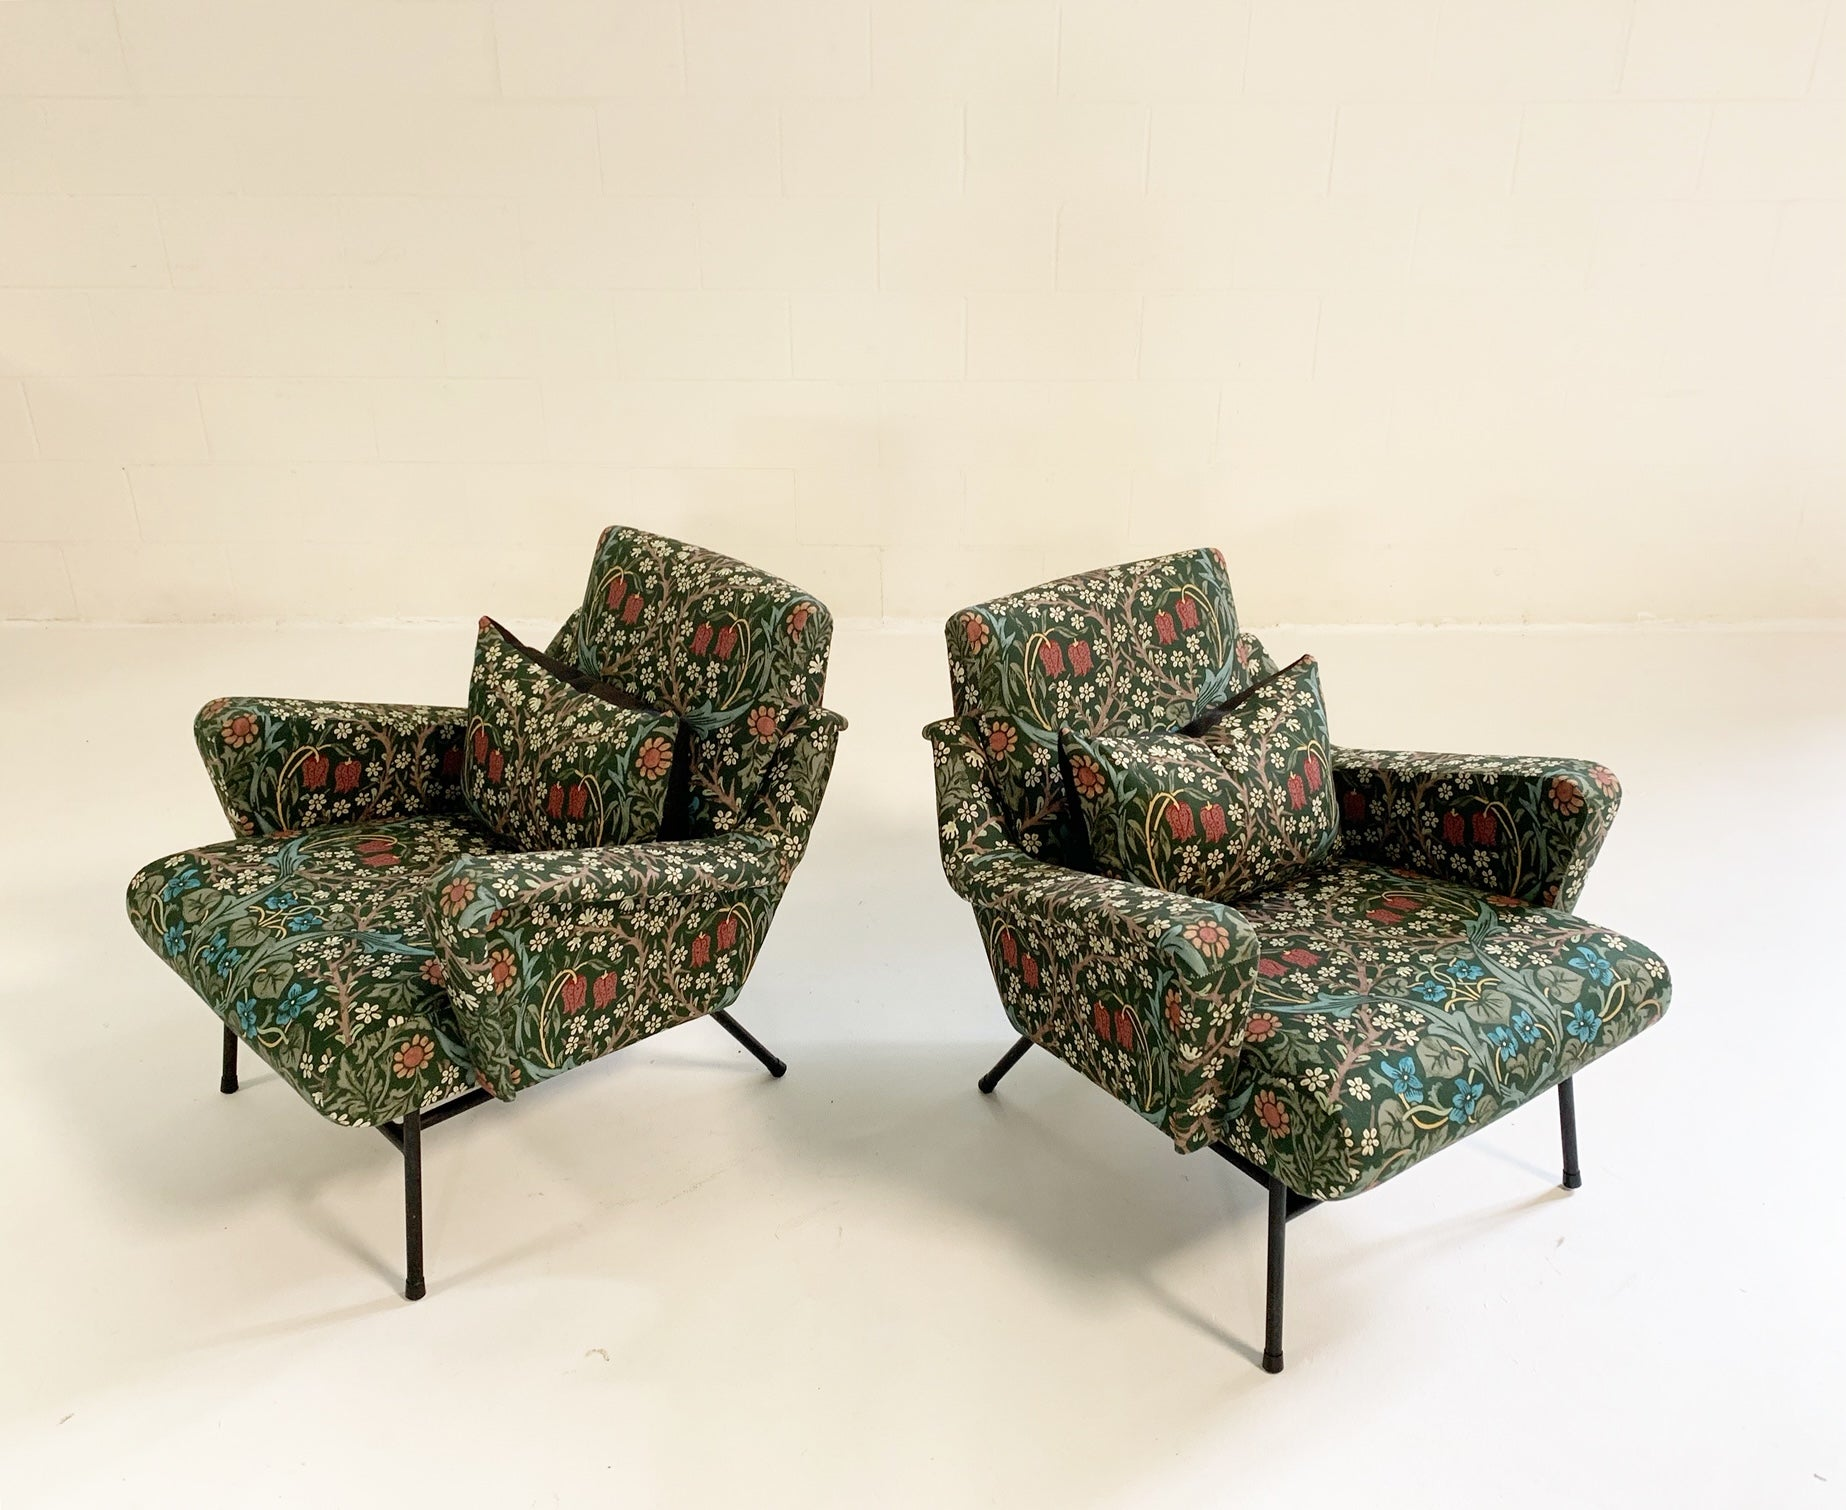 French Lounge Chairs in William Morris Blackthorn, pair - FORSYTH